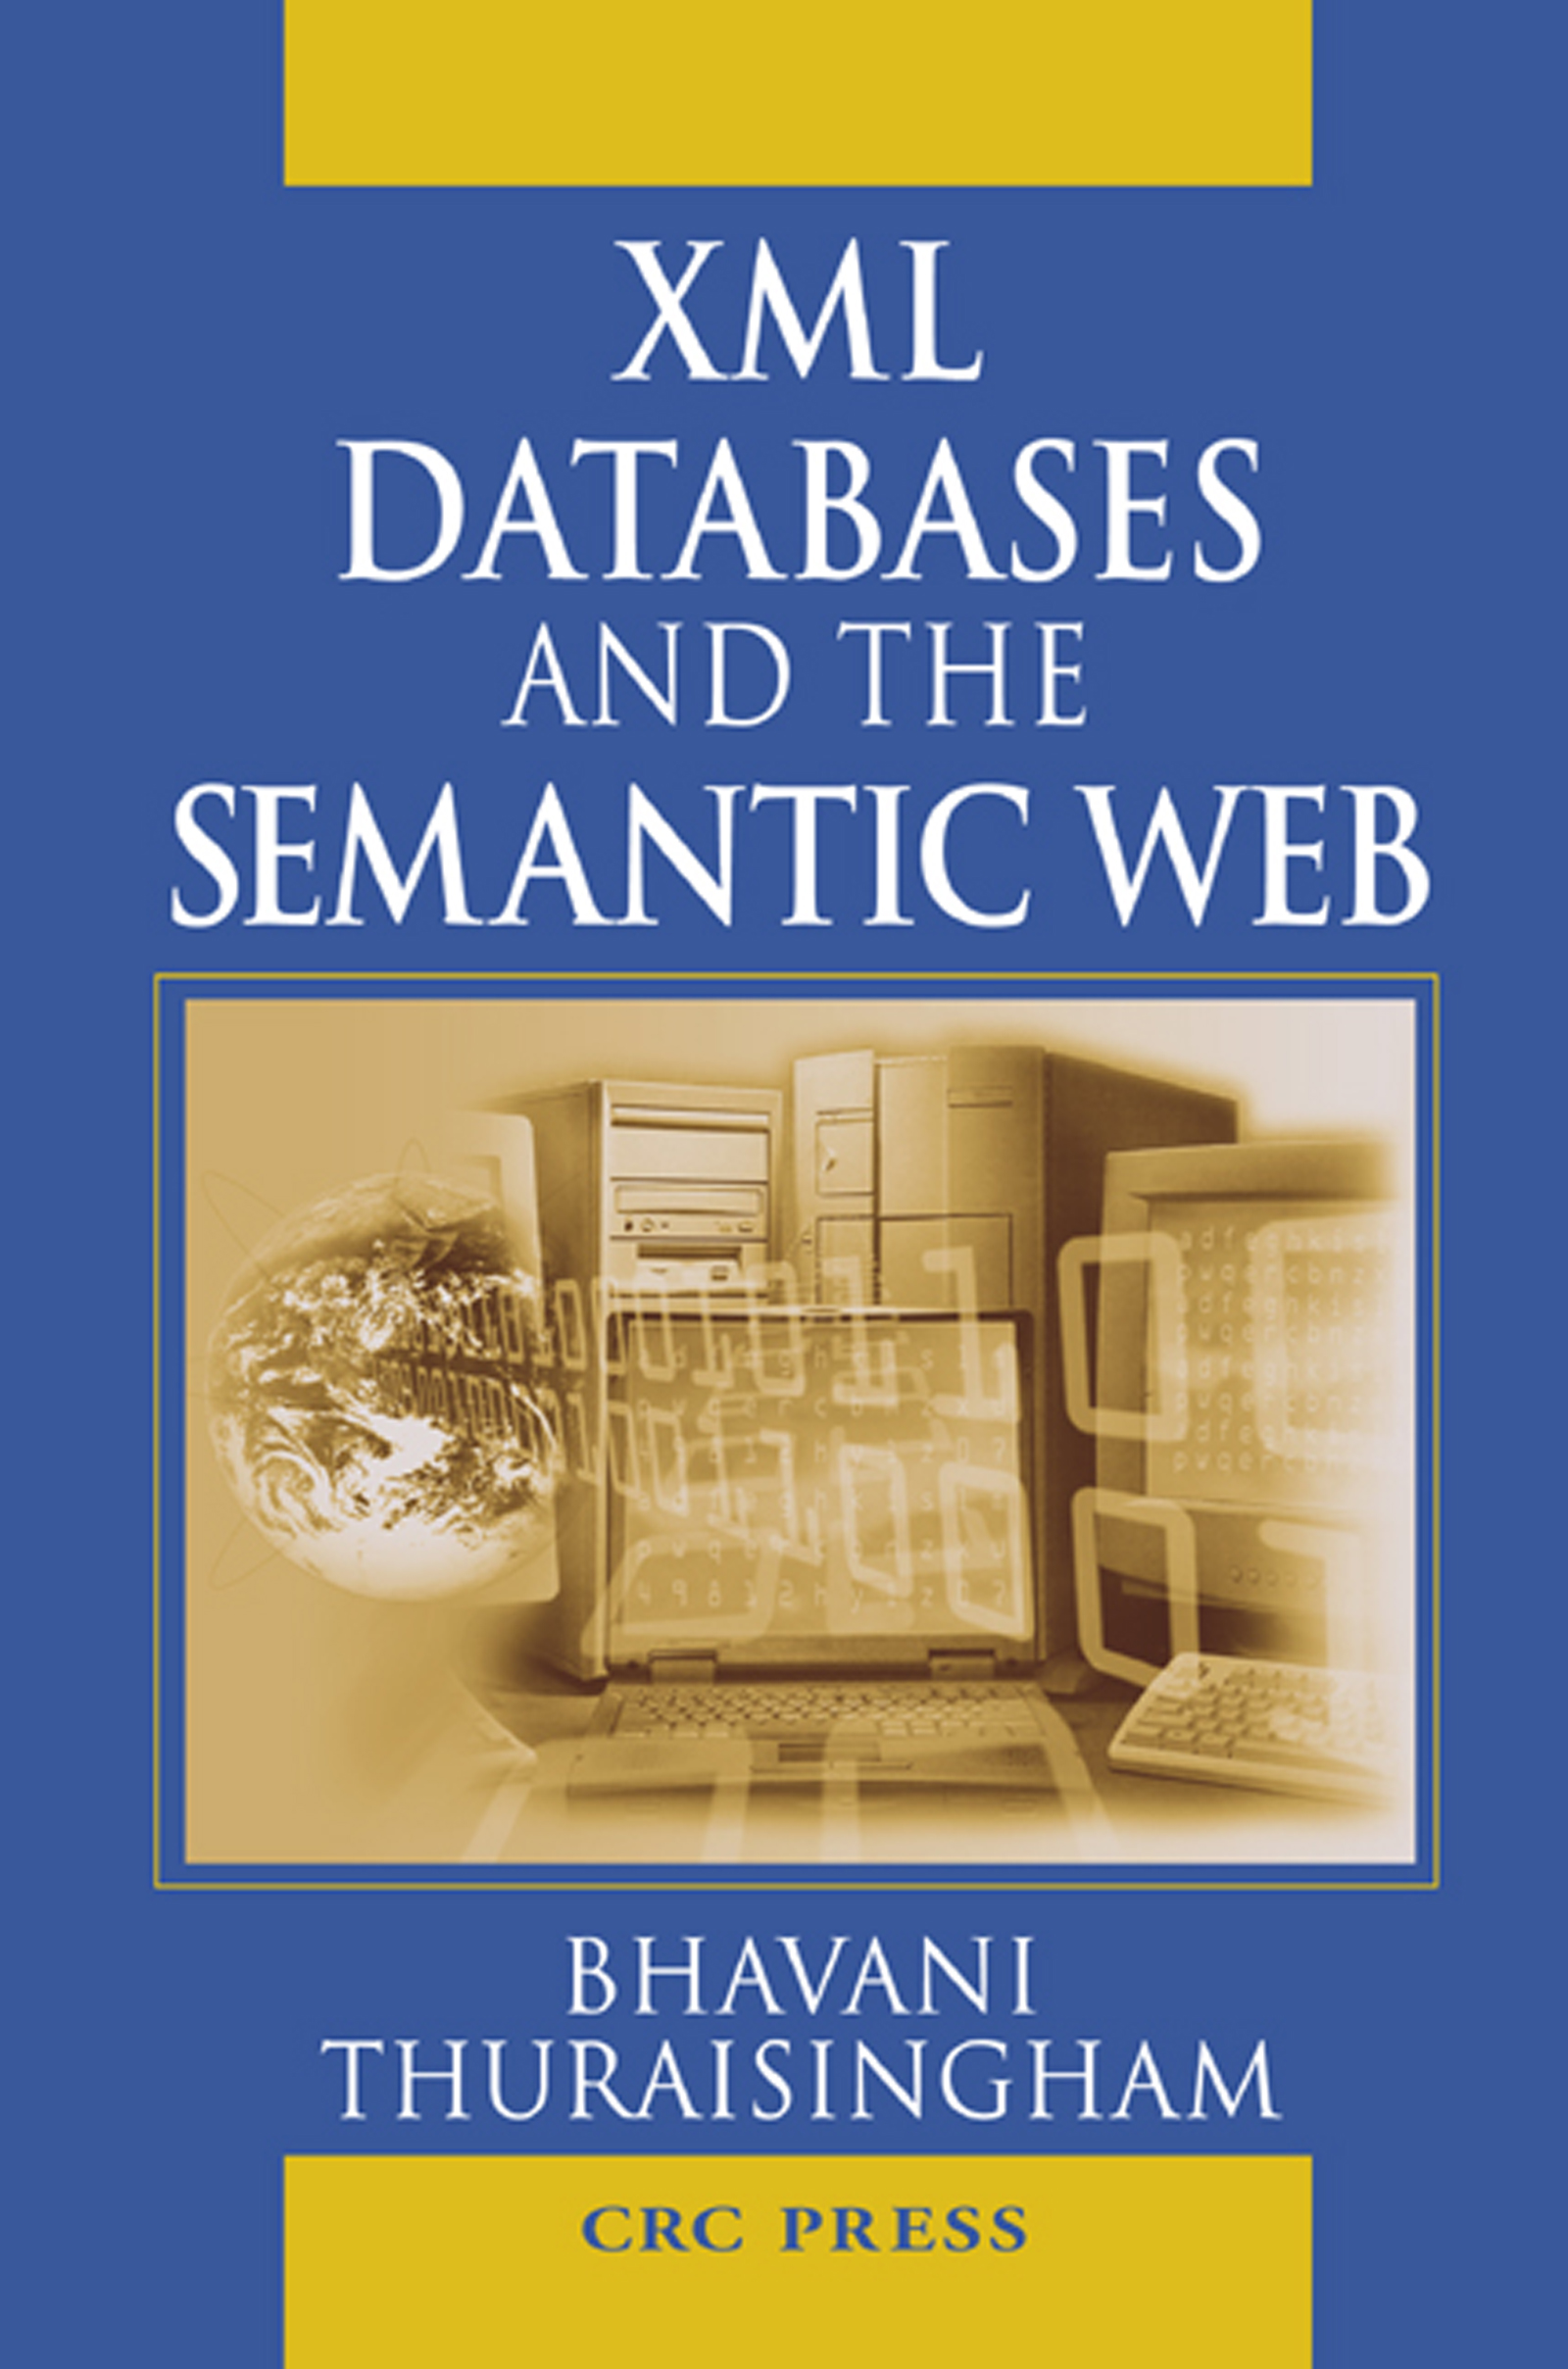 ISBN 9781420000023 product image for XML Databases and the Semantic Web | upcitemdb.com